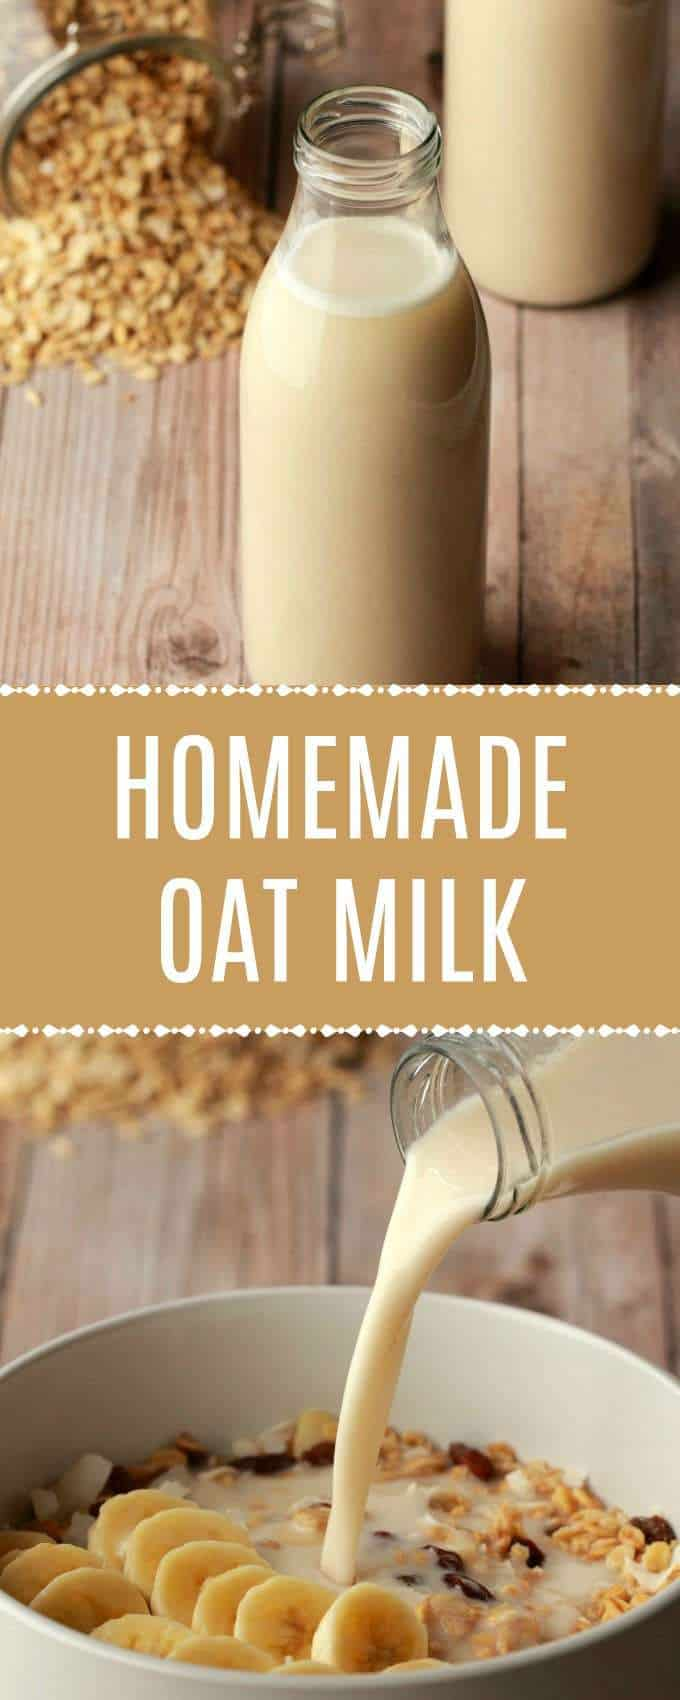 Creamy and delicious oat milk! This homemade oat milk recipe is 5 easy ingredients, ready in minutes, and delicious in tea or coffee or poured over cereal. | lovingitvegan.com